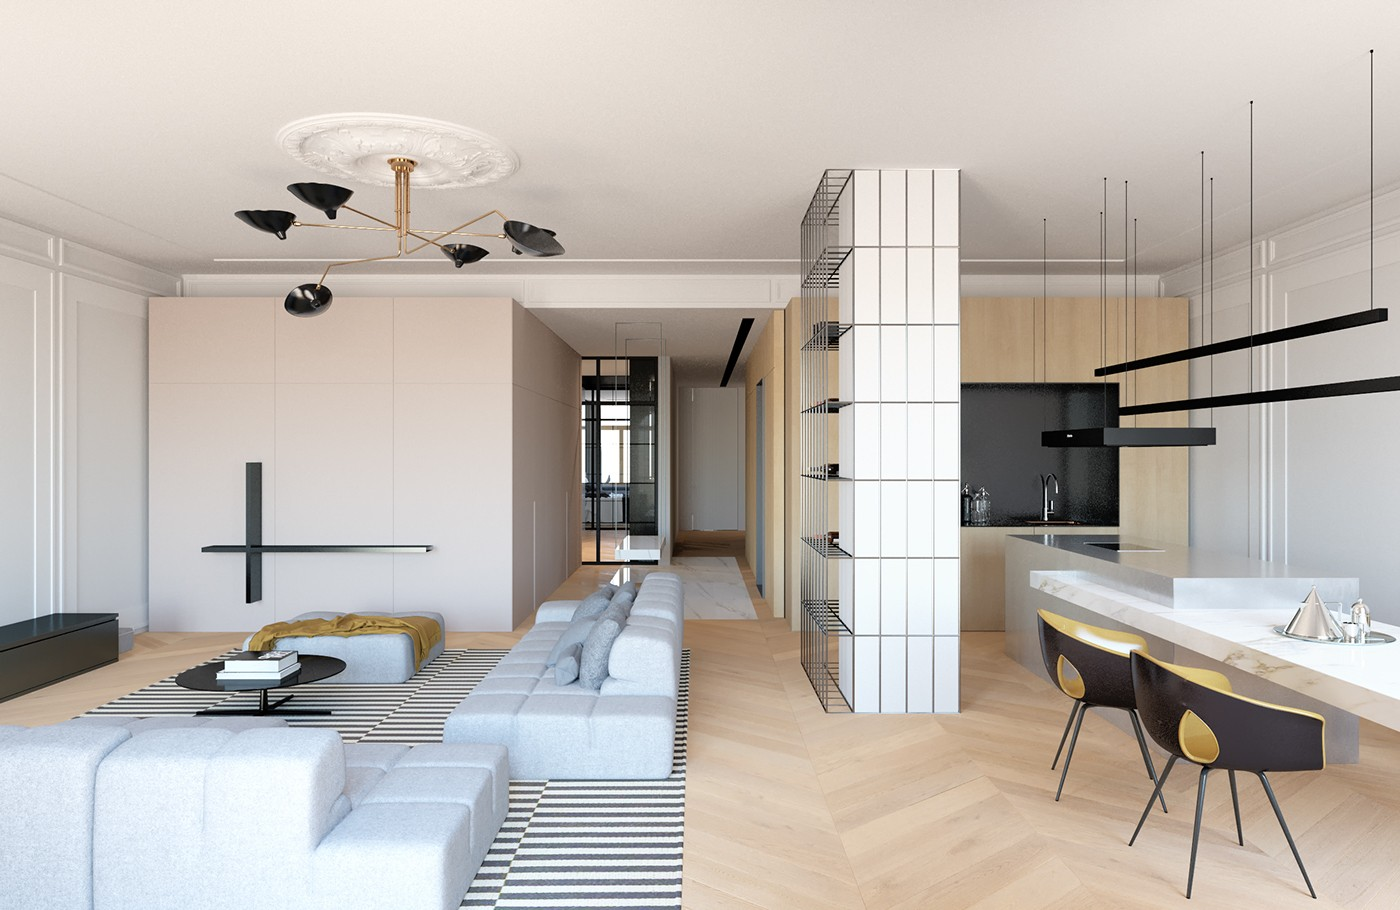 Modern Decor Meets Classical Features in Two Transitional Home Designs